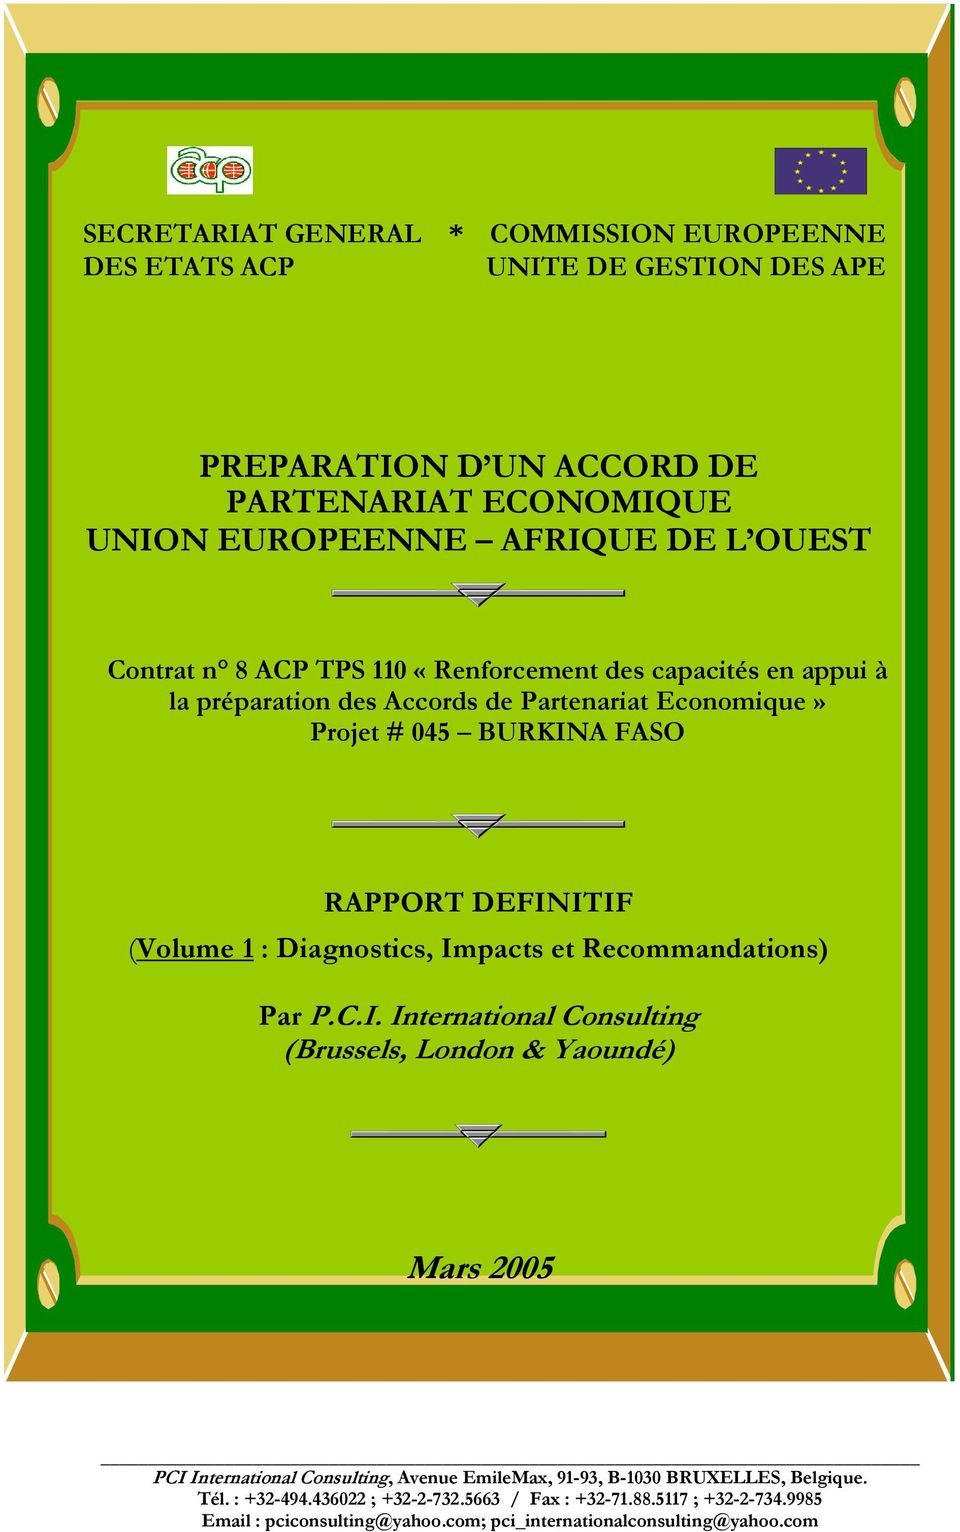 Diagnostics, Impacts et Recommandations) Par P.C.I. International Consulting (Brussels, London & Yaoundé) Mars 2005 PCI International Consulting, Avenue EmileMax, 91-93, B-1030 BRUXELLES, Belgique.